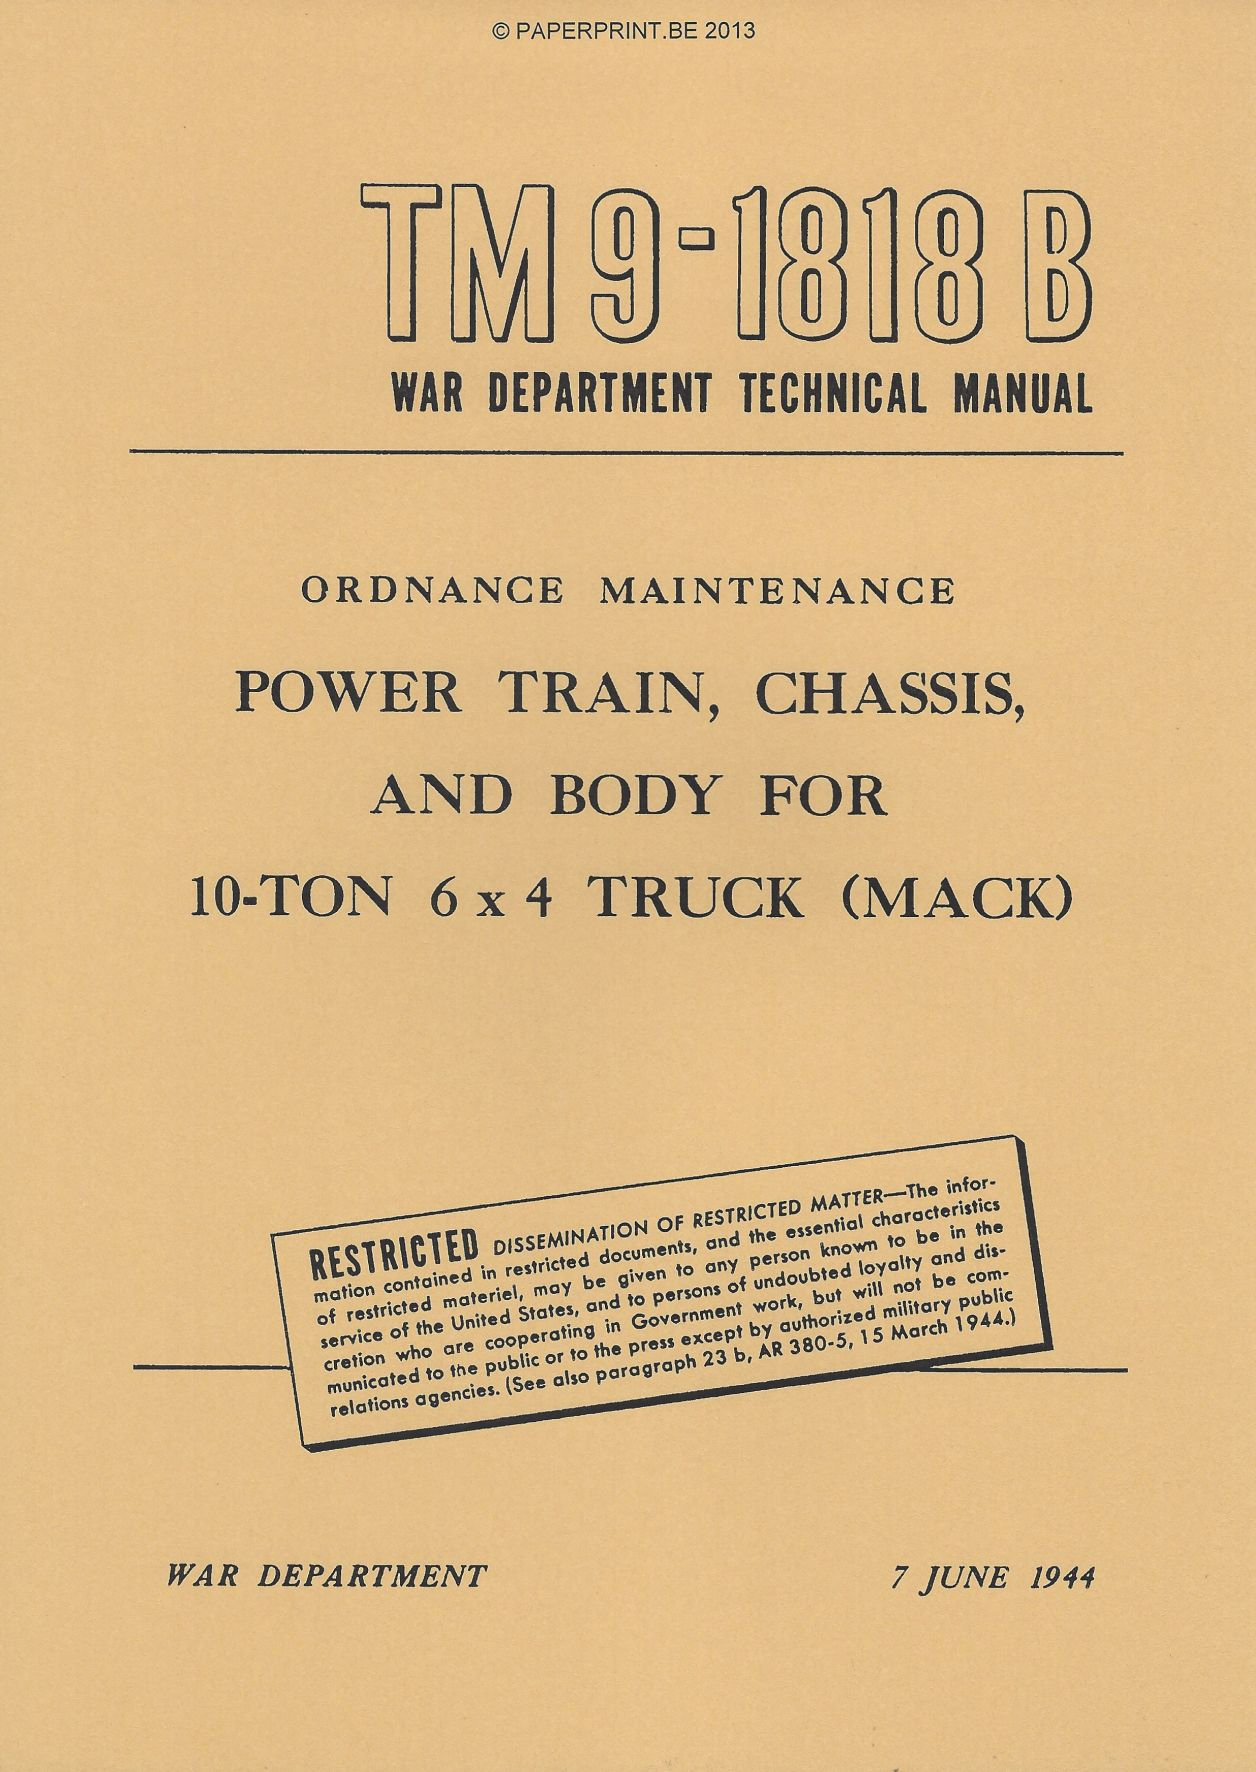 TM 9-1818B US POWER TRAIN, CHASSIS AND BODY FOR 10-TON 6x4 TRUCK (MACK)